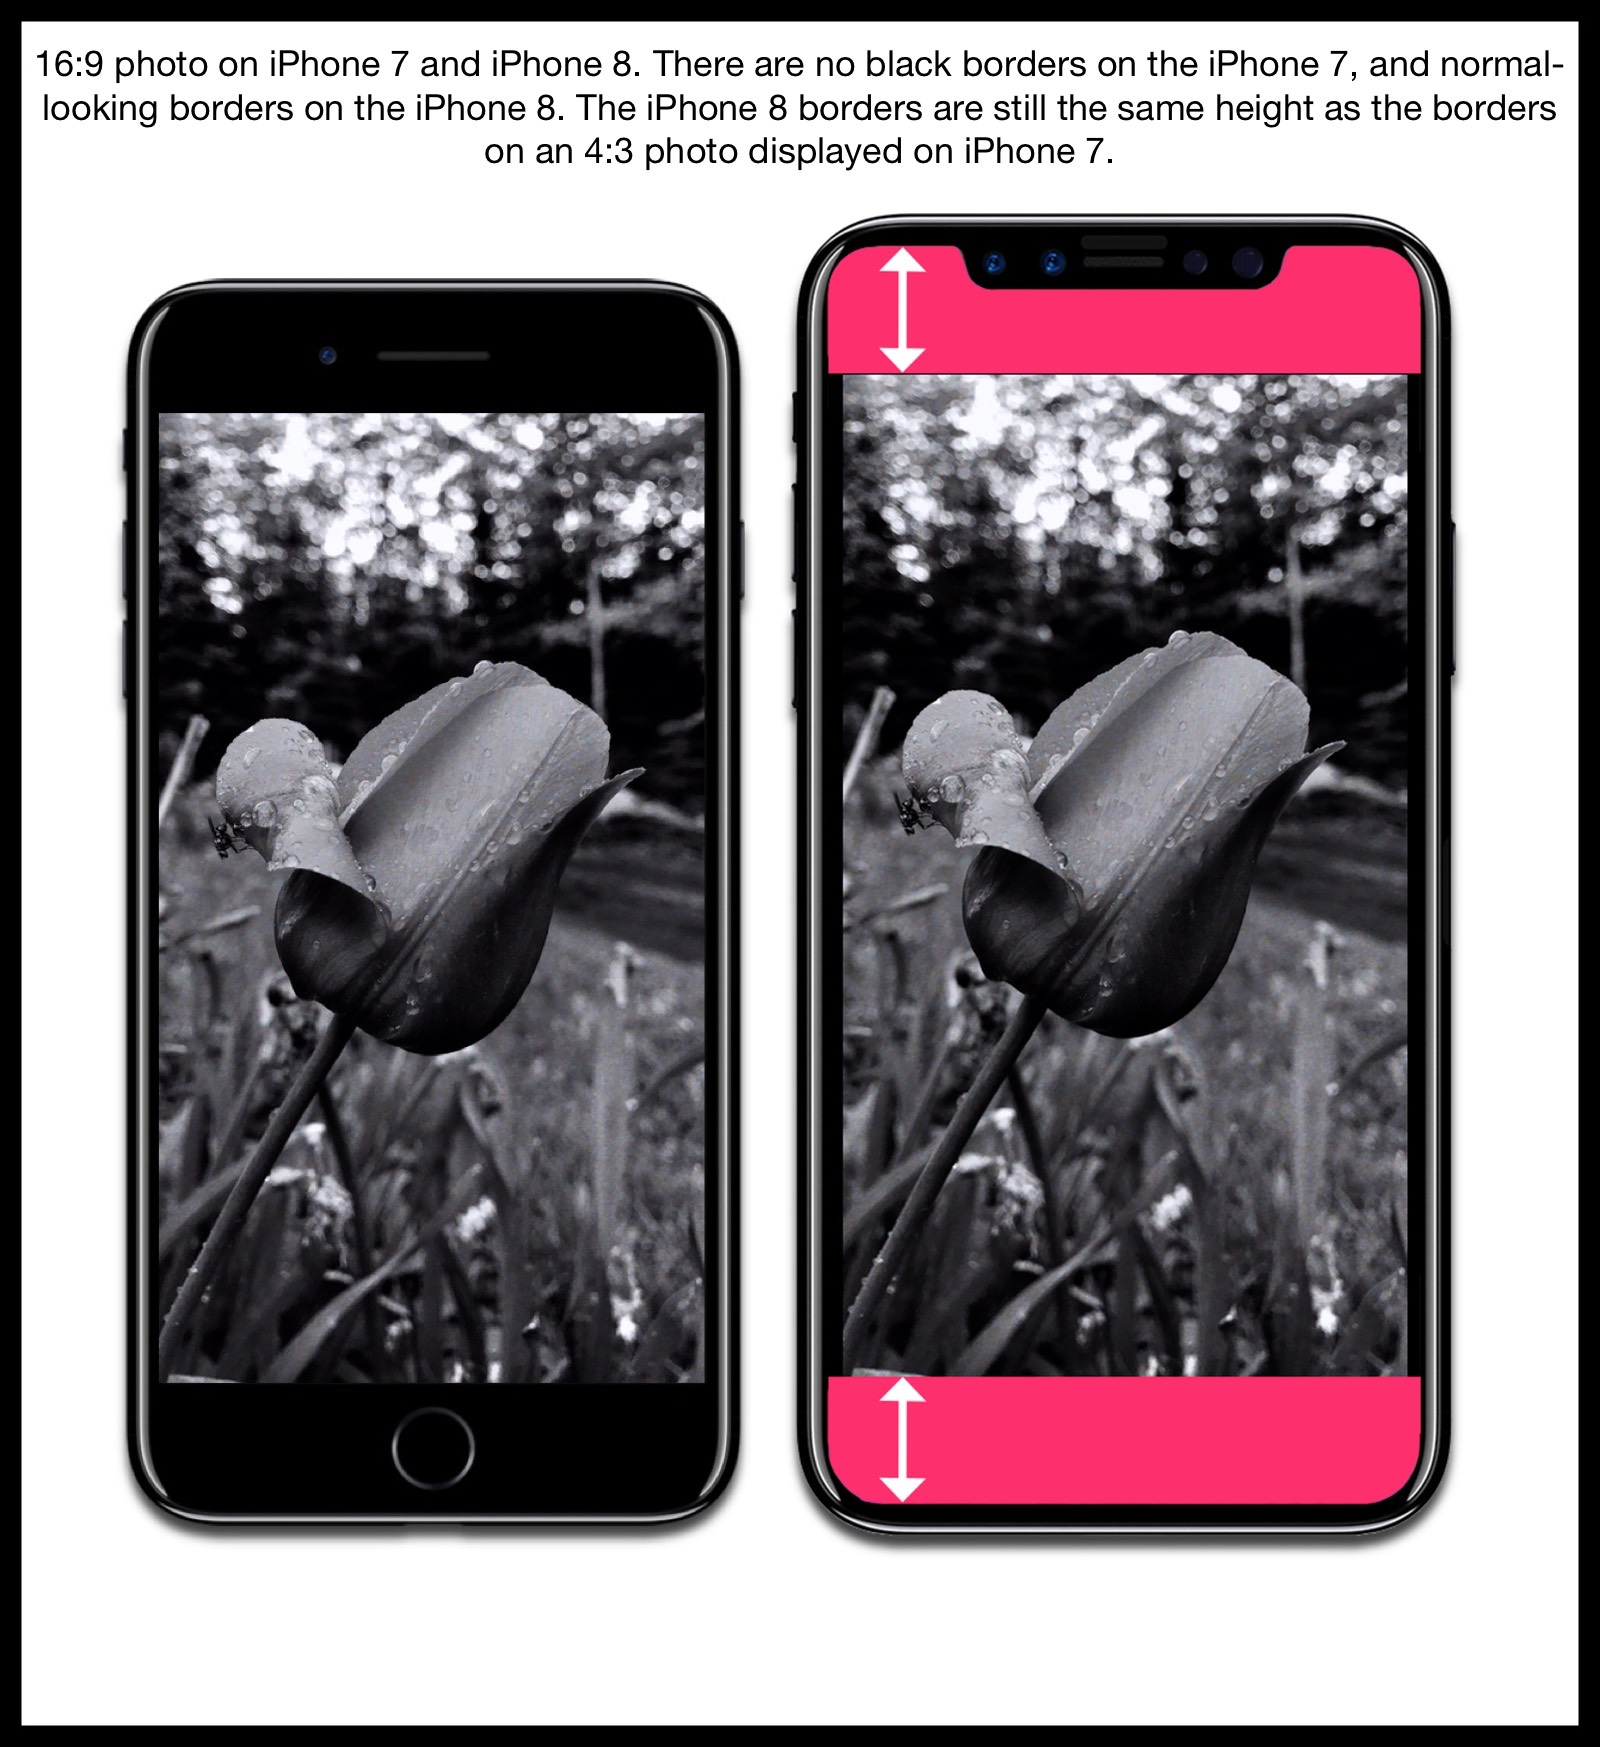 Image comparing how 16:9 aspect ratio photos are displayed on an iPhone 7 and iPhone 8 mockup.